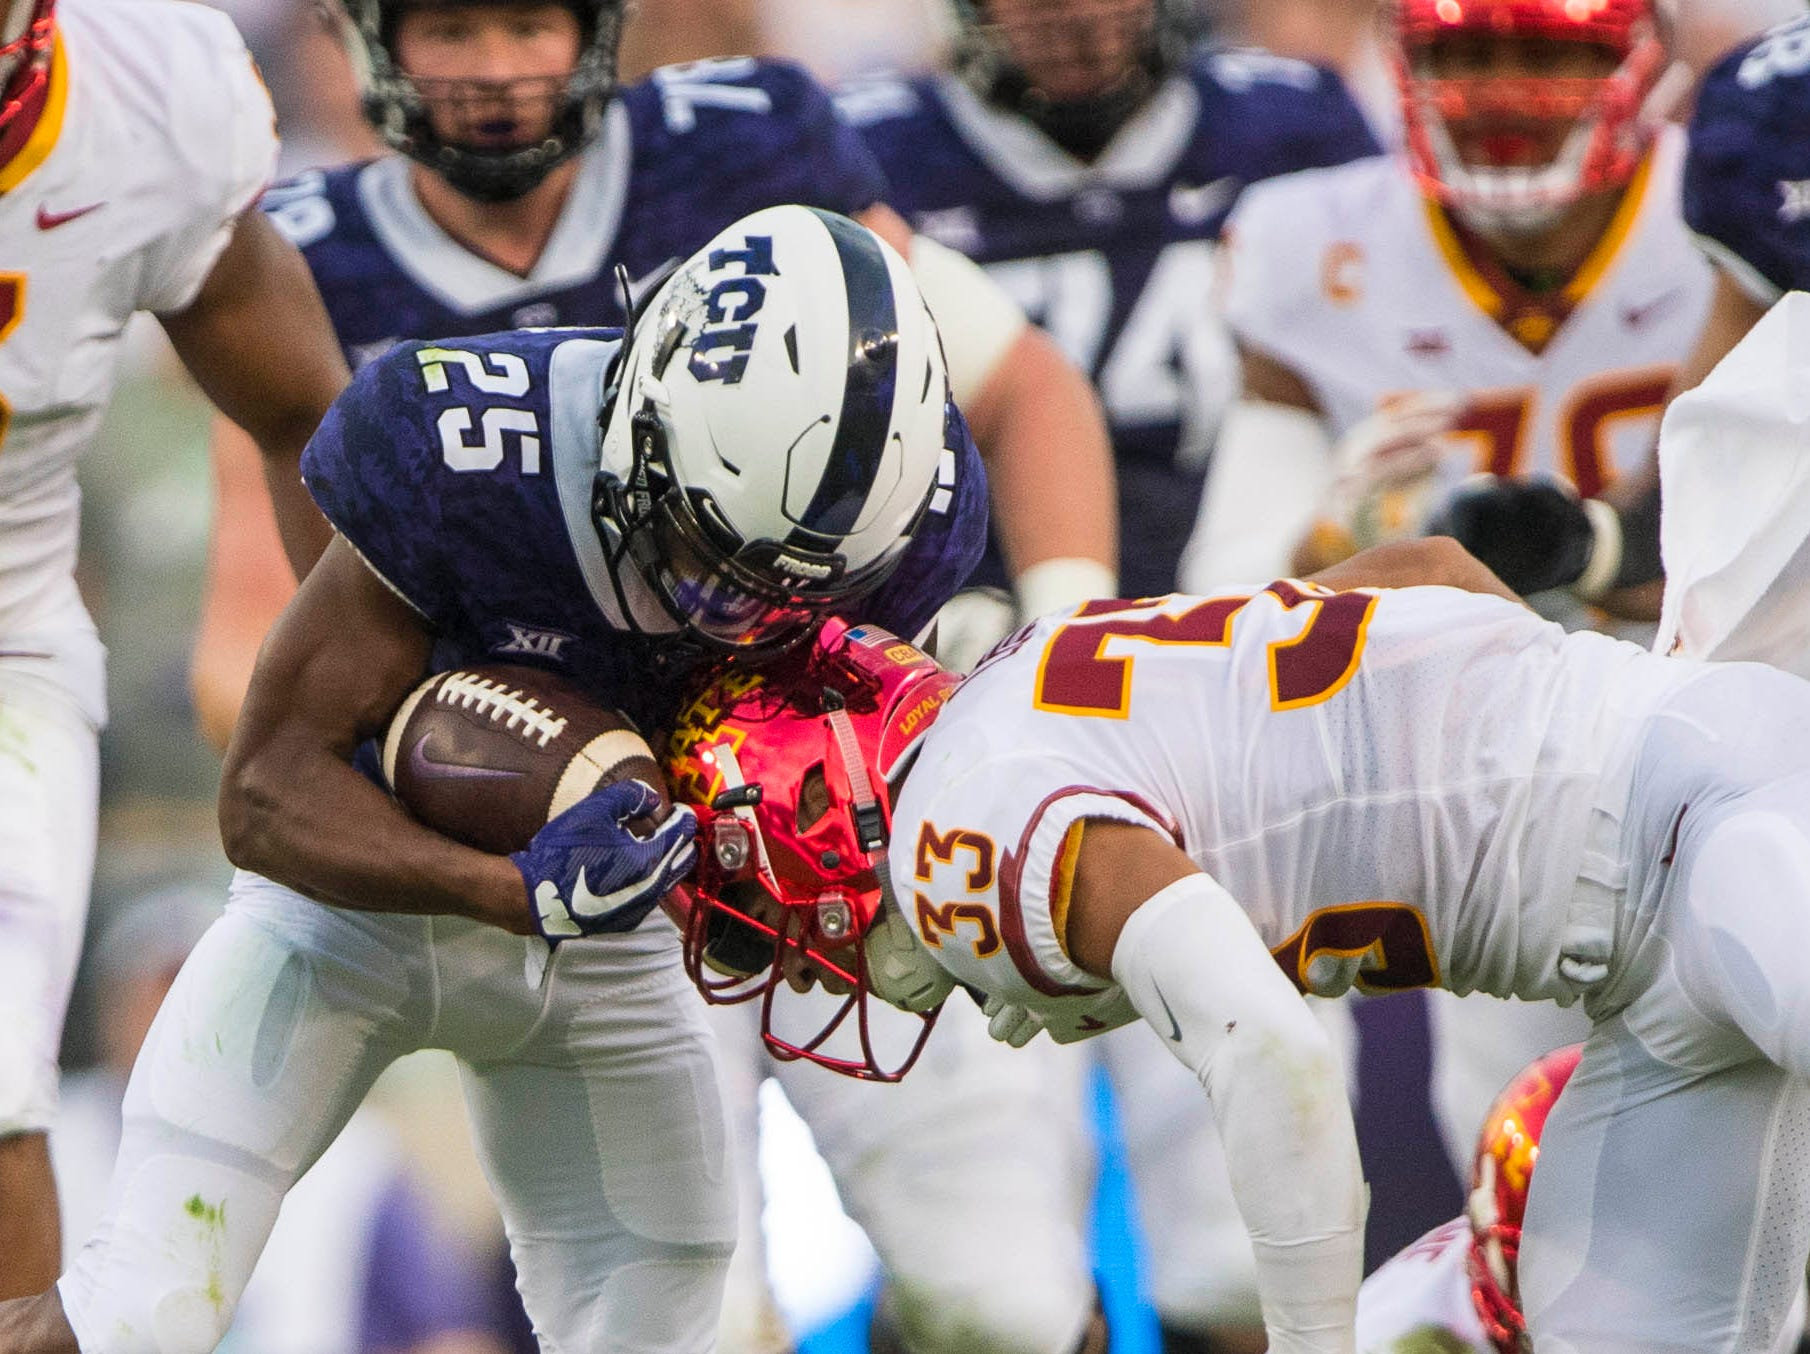 TCU Horned Frogs wide receiver KaVontae Turpin (25) is hit by Iowa State Cyclones defensive back Braxton Lewis (33) during the first half at Amon G. Carter Stadium. Upon review Lewis was not called for targeting.